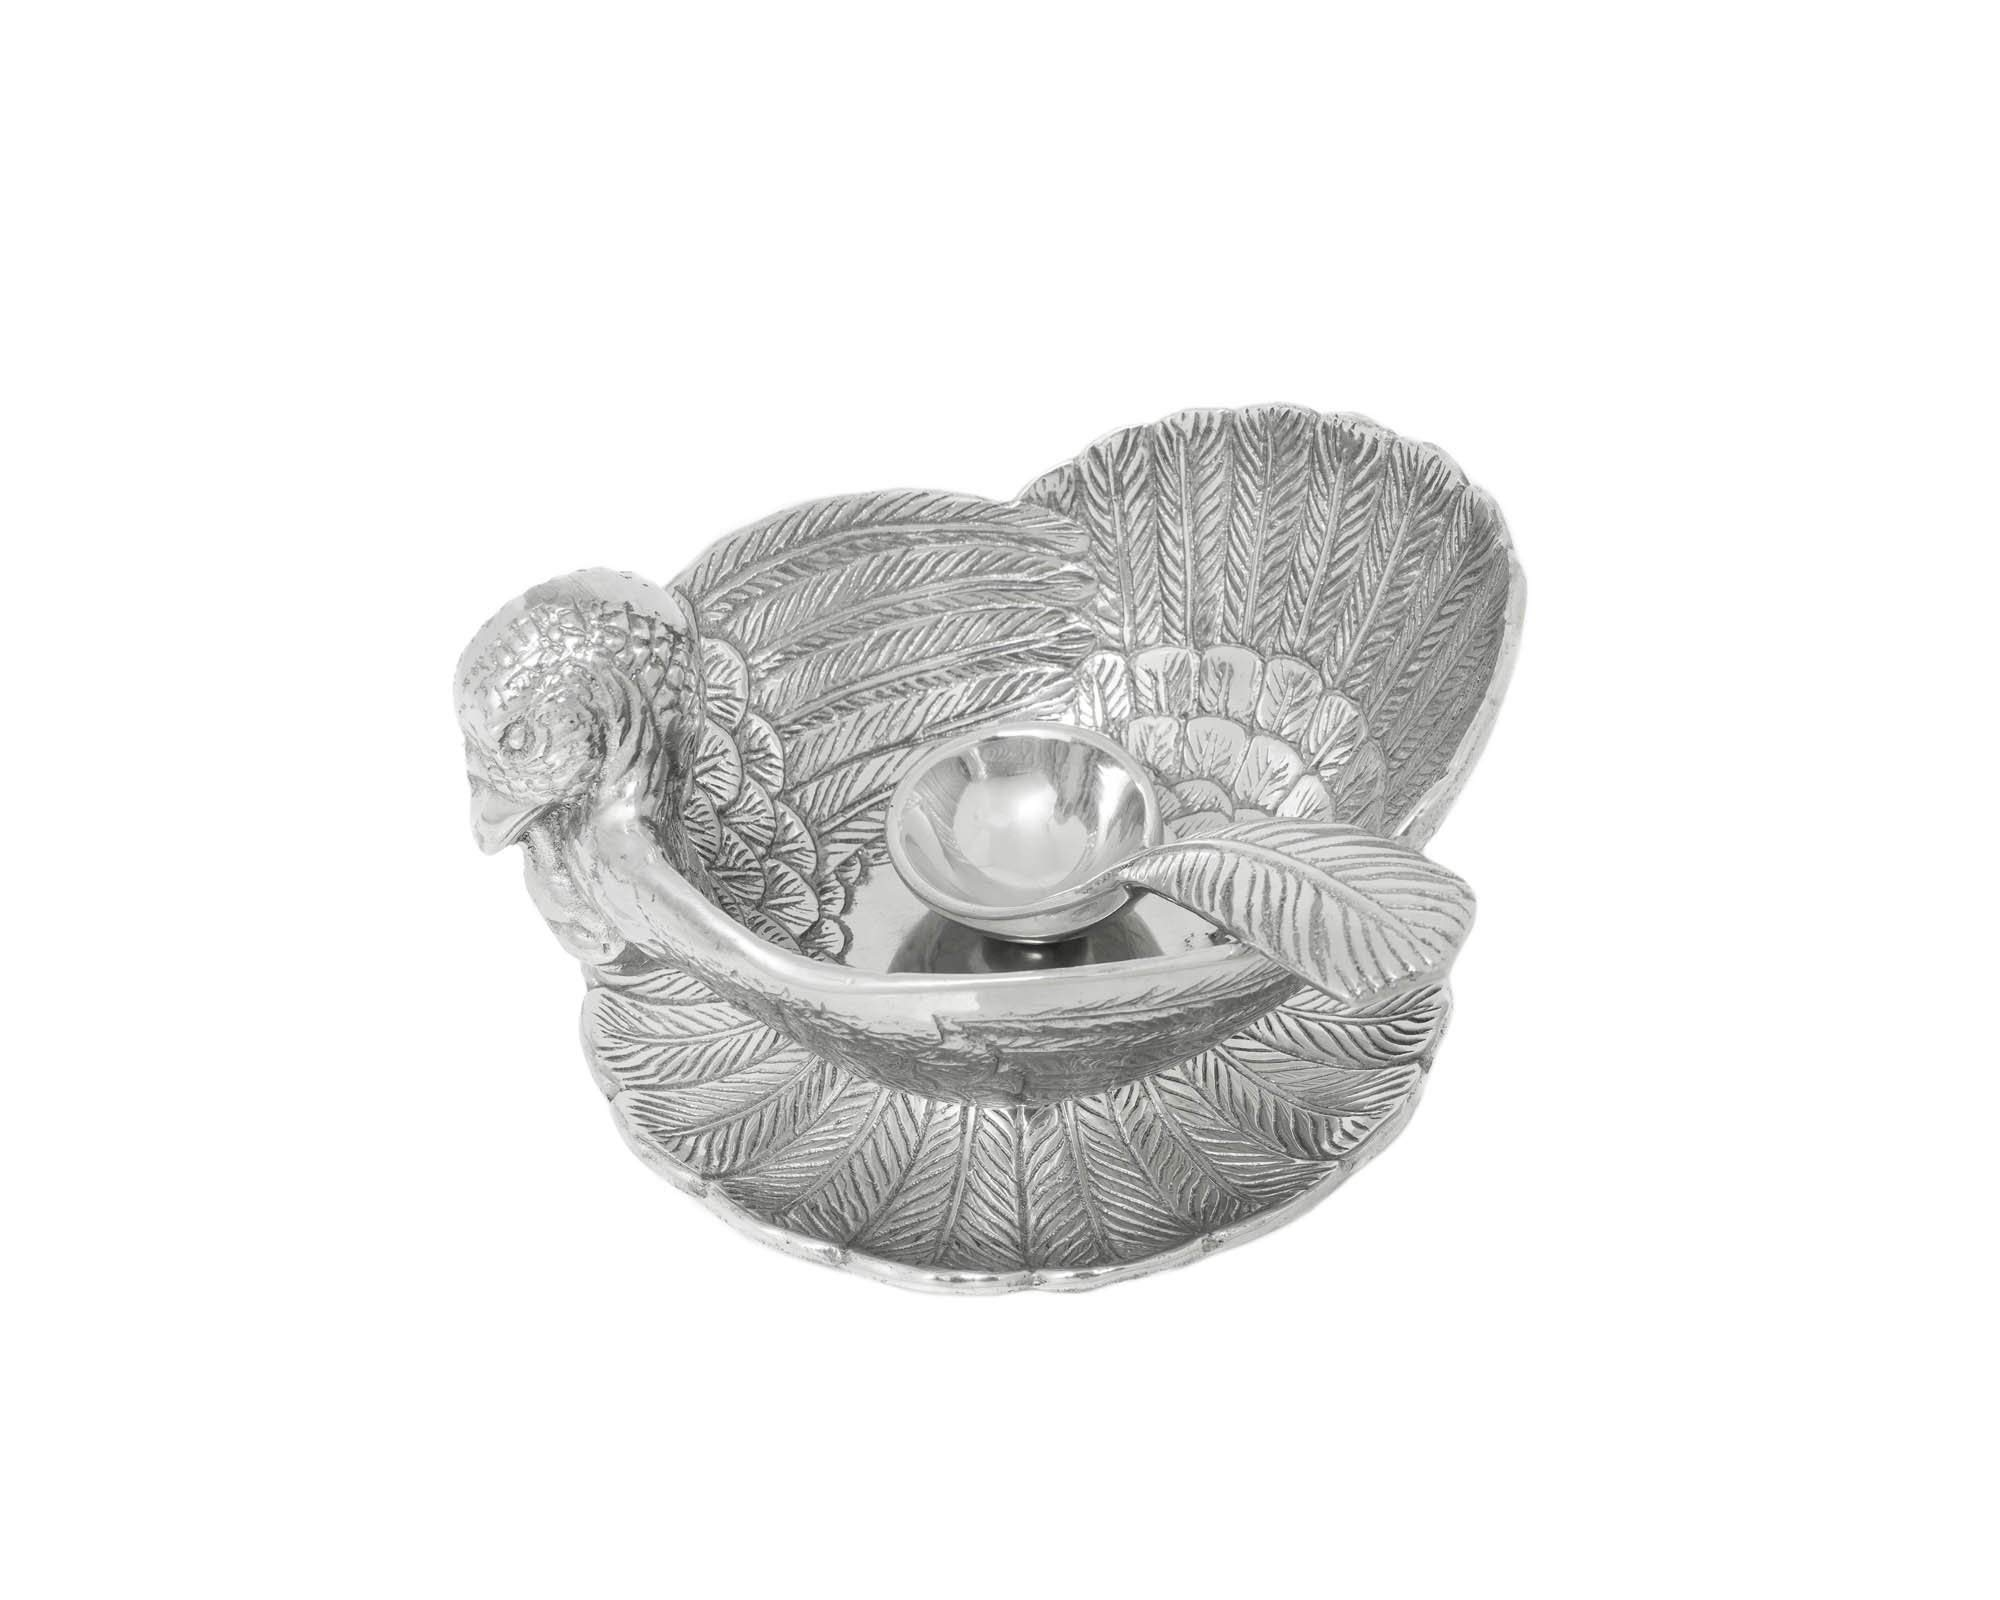 Arthur Court Designs Aluminum Turkey 3-Piece Condiment Set Tray/Bowl/Spoon